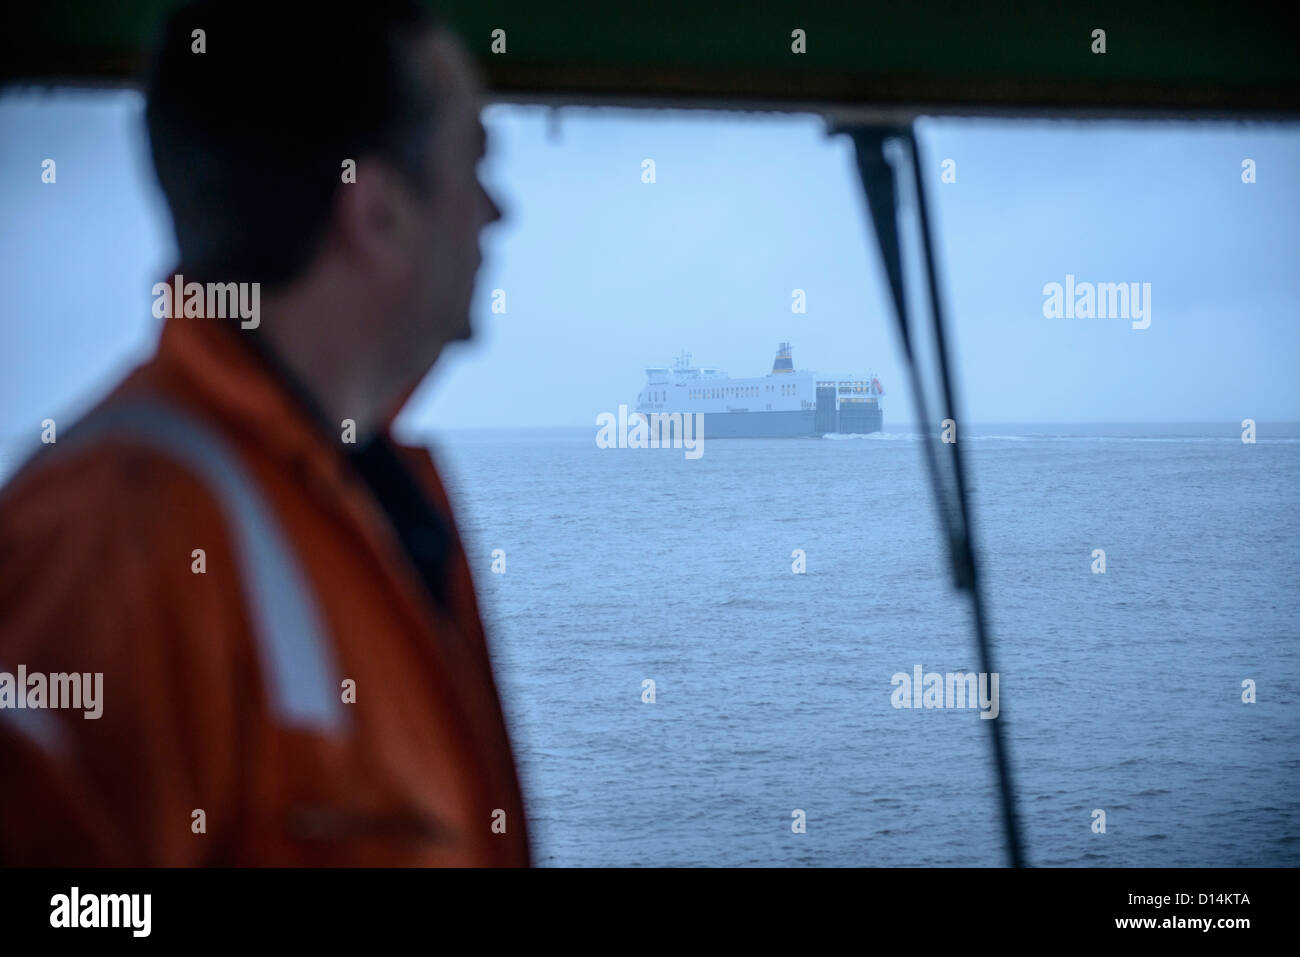 Tanker ship seen from tugboat - Stock Image